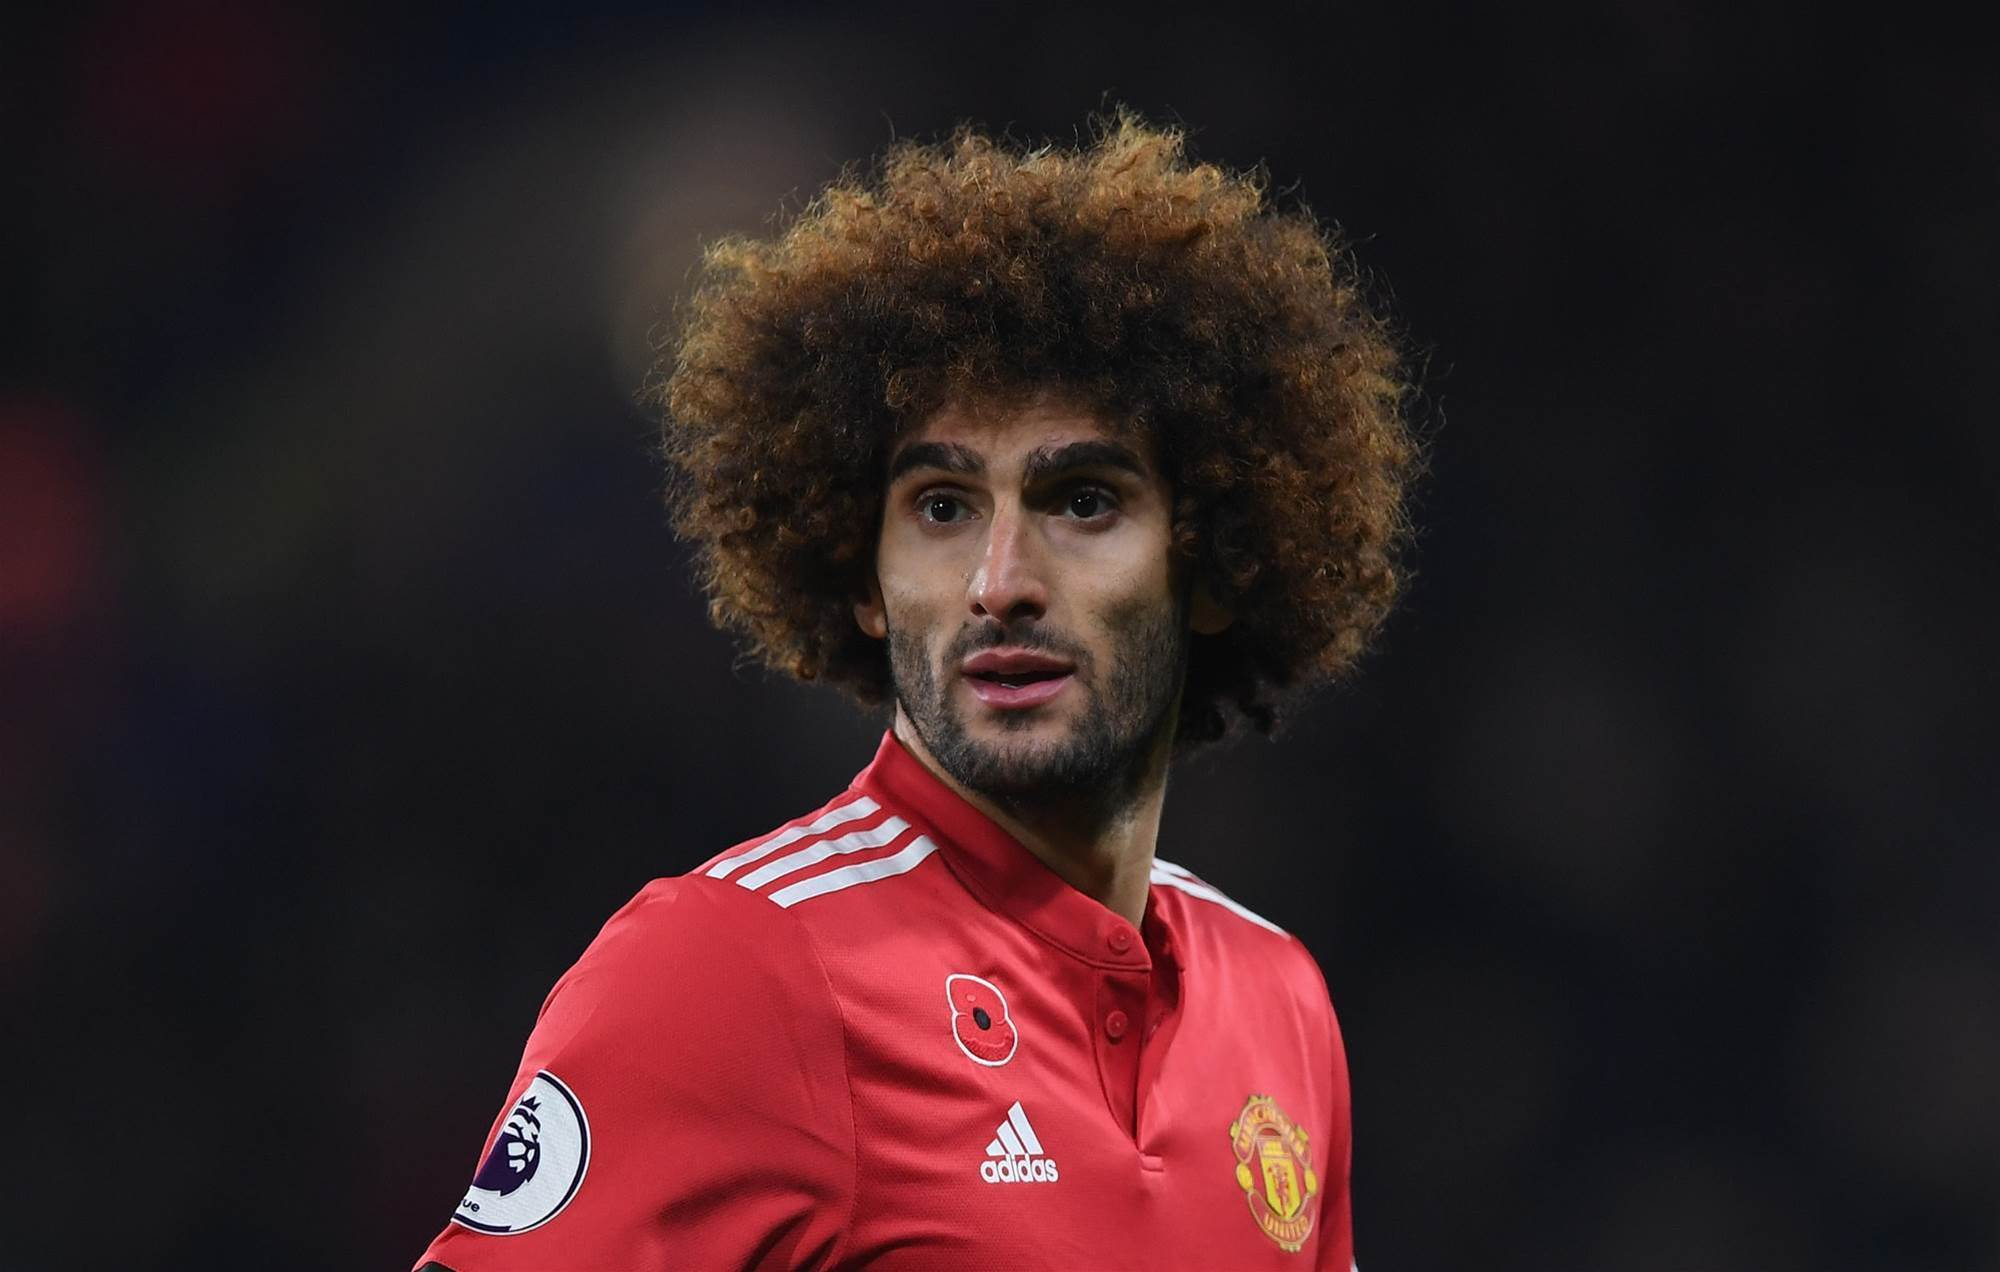 Fellaini and New Balance caught in legal feud